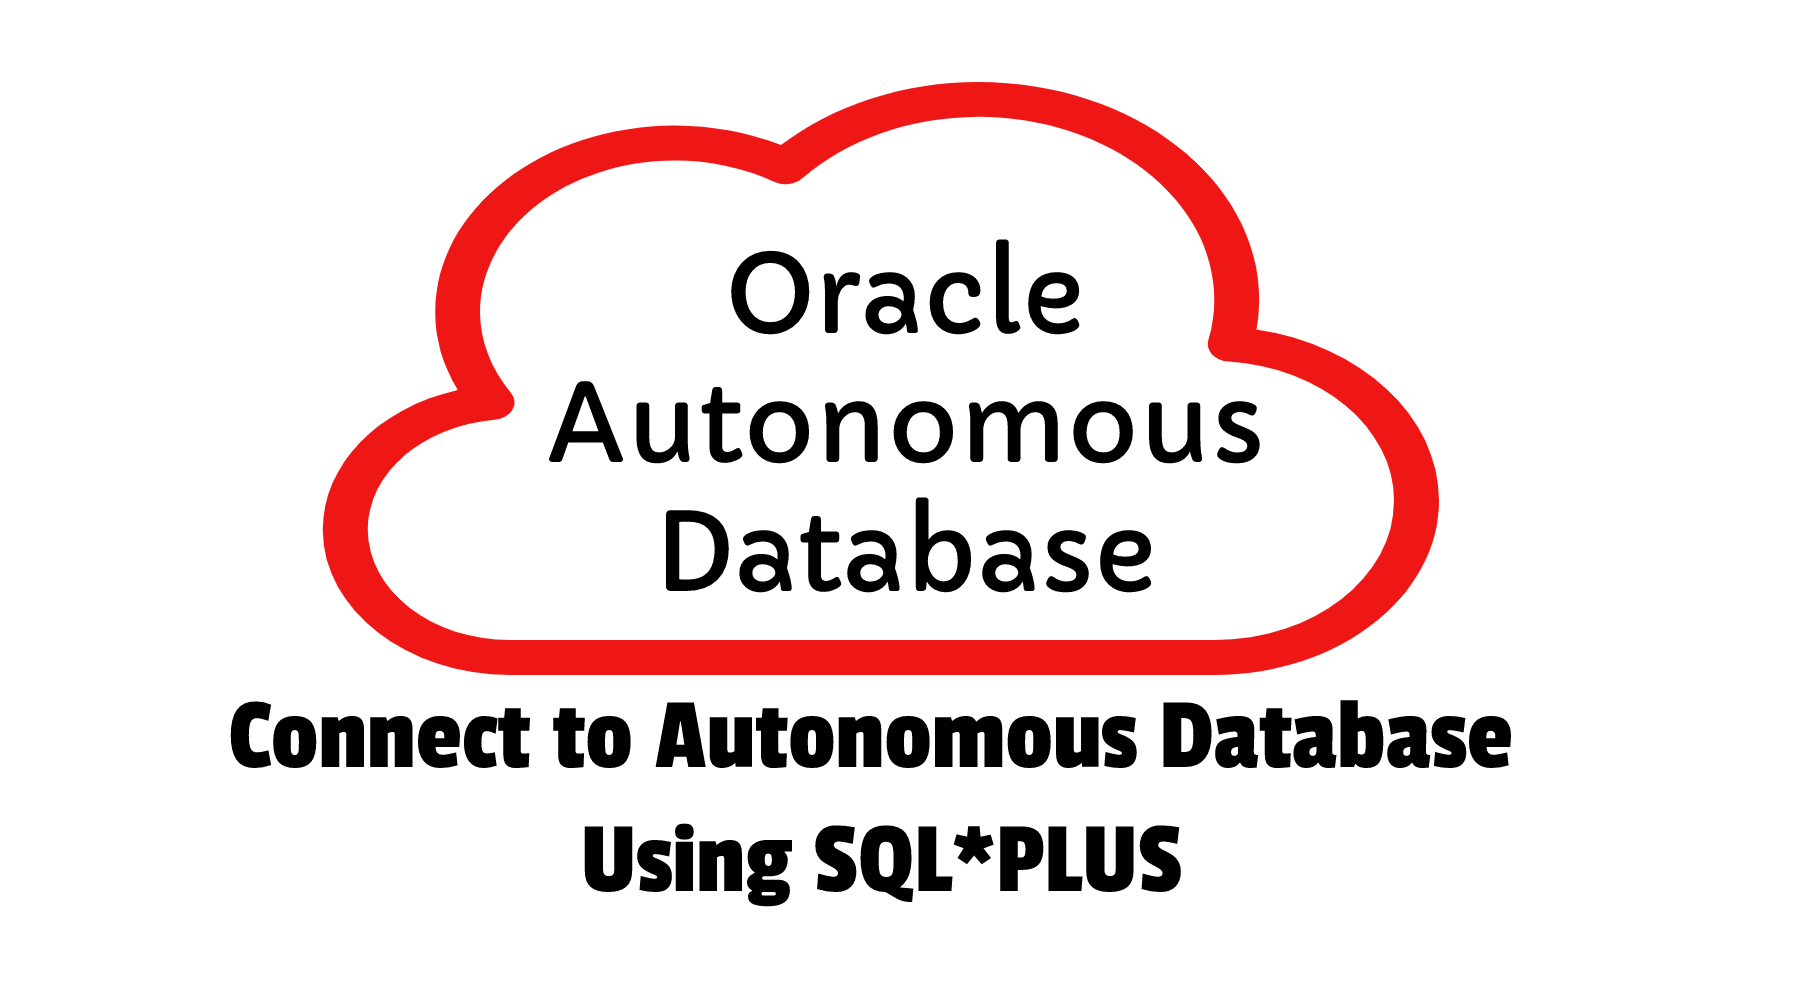 Connect to Autonomous db using sqlplus